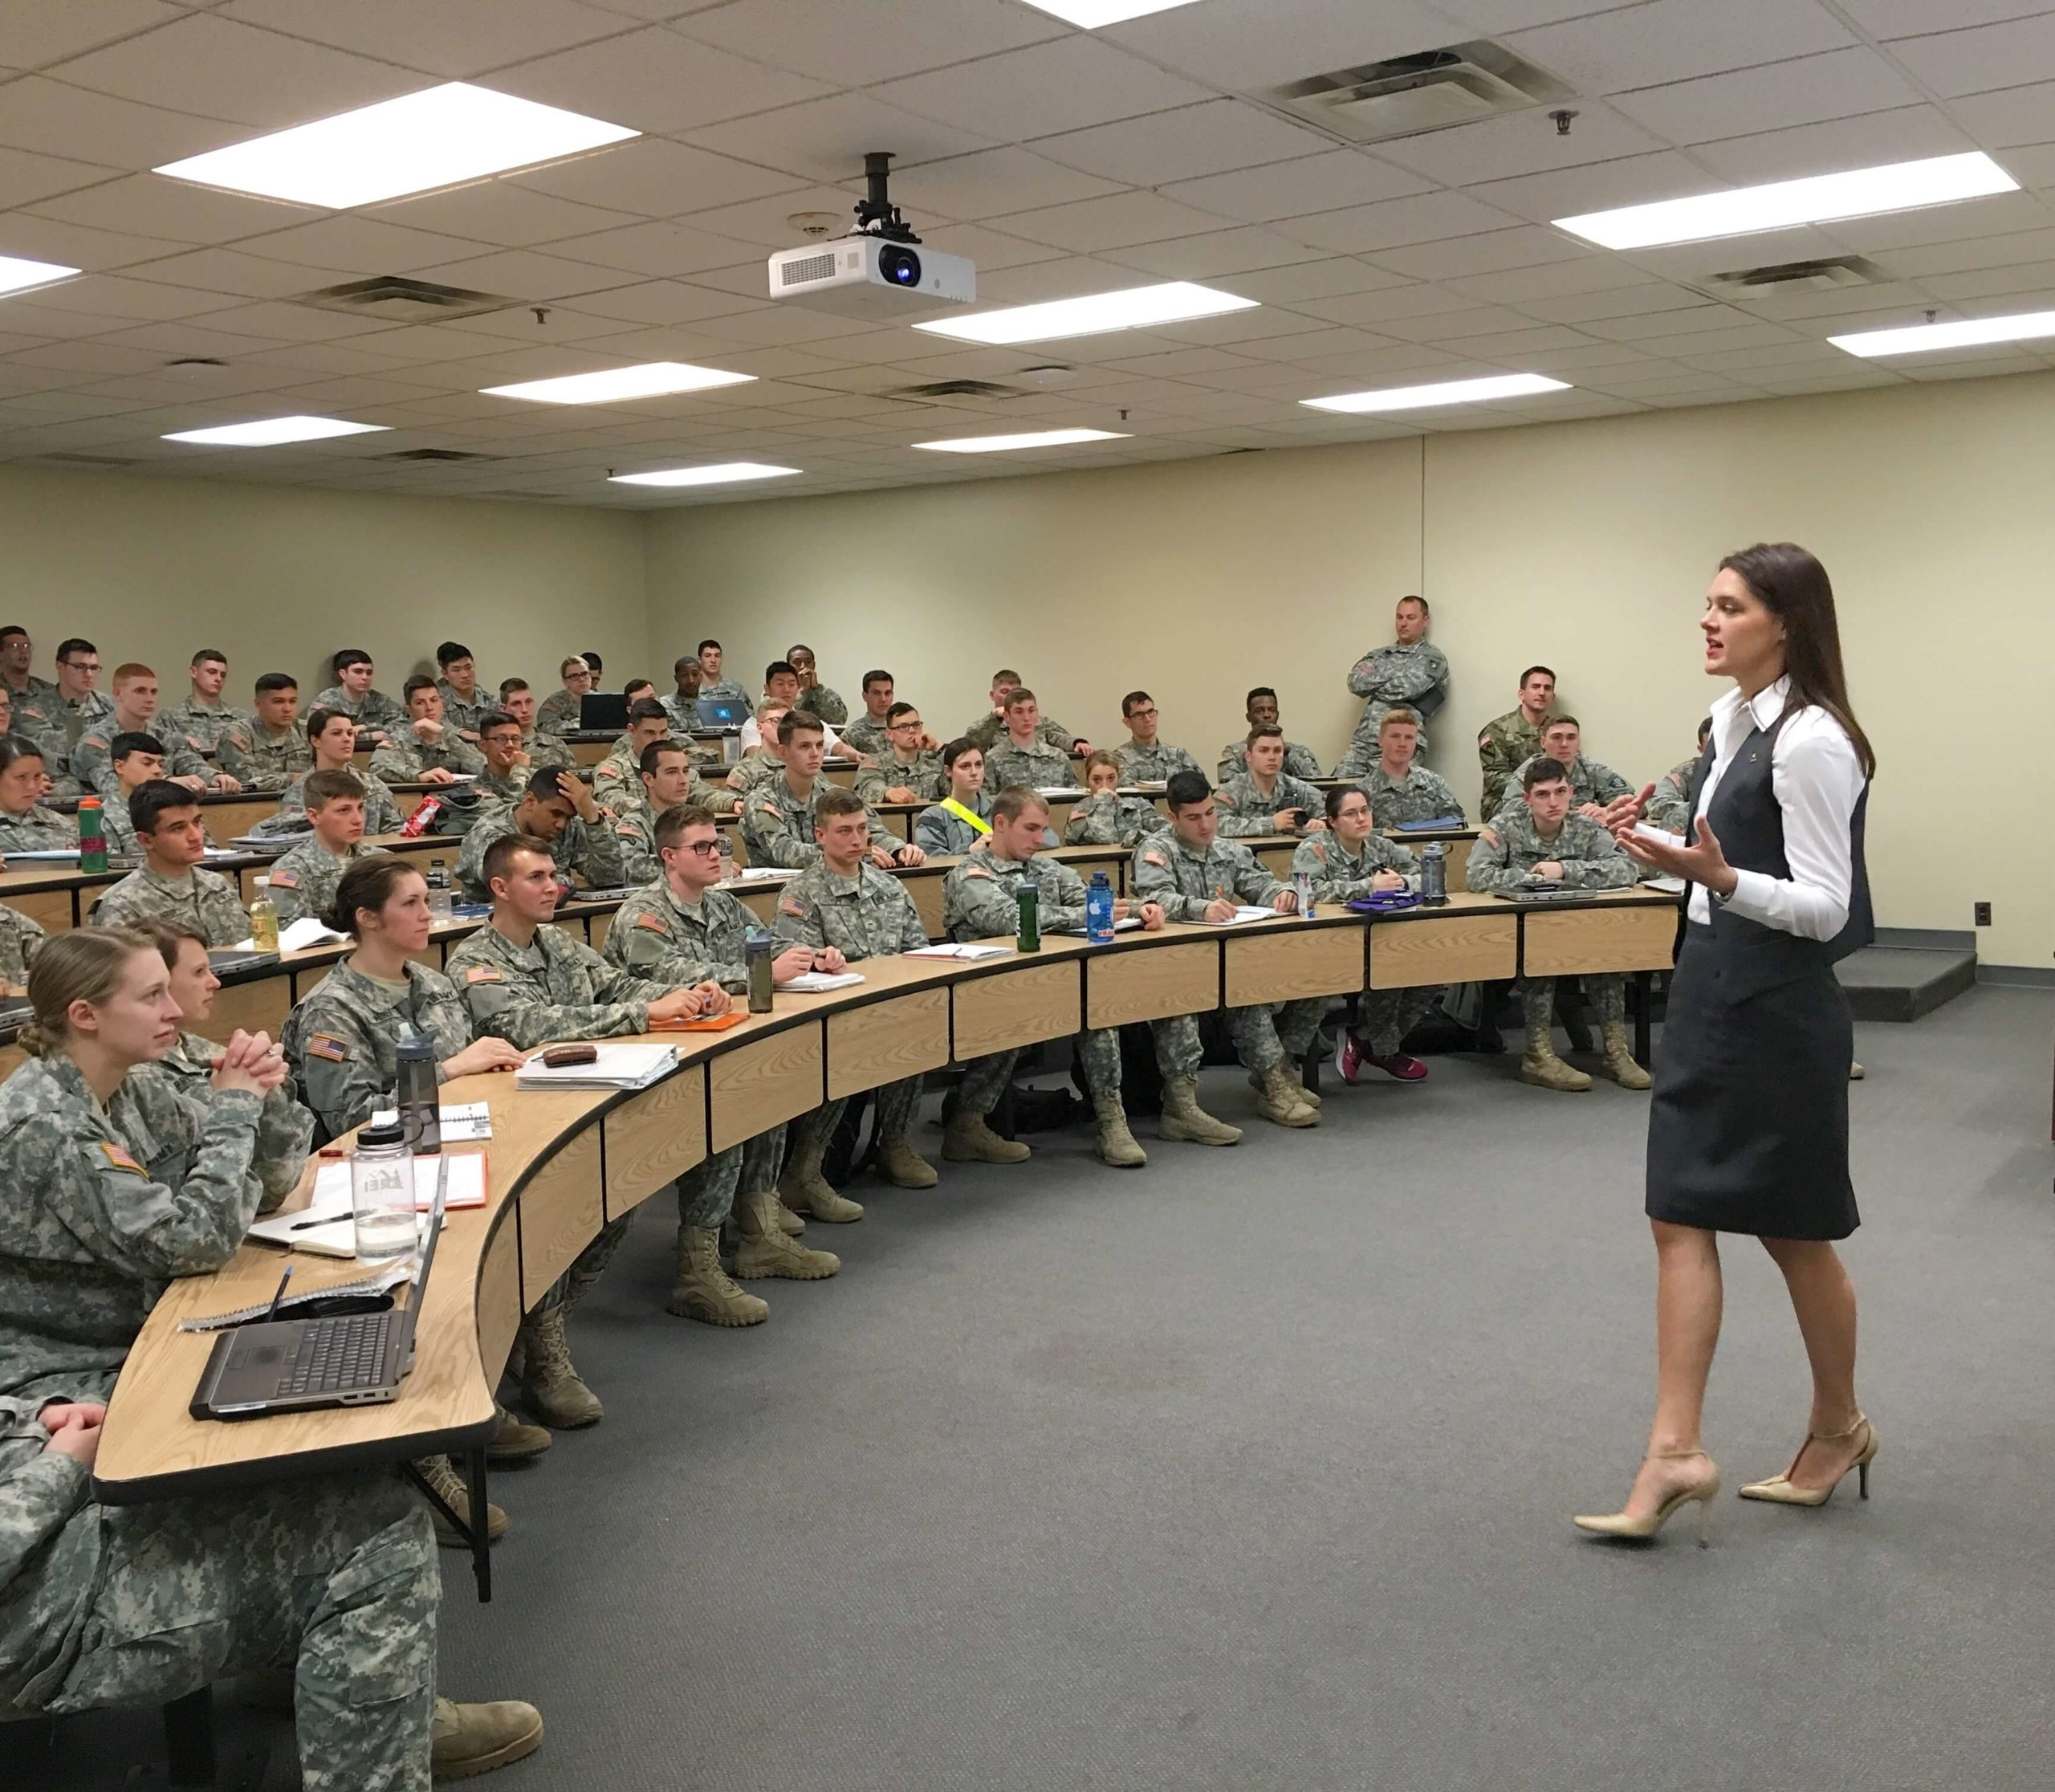 LAW teaching cadets about the importance of US elections at West Point, United States Military Academy